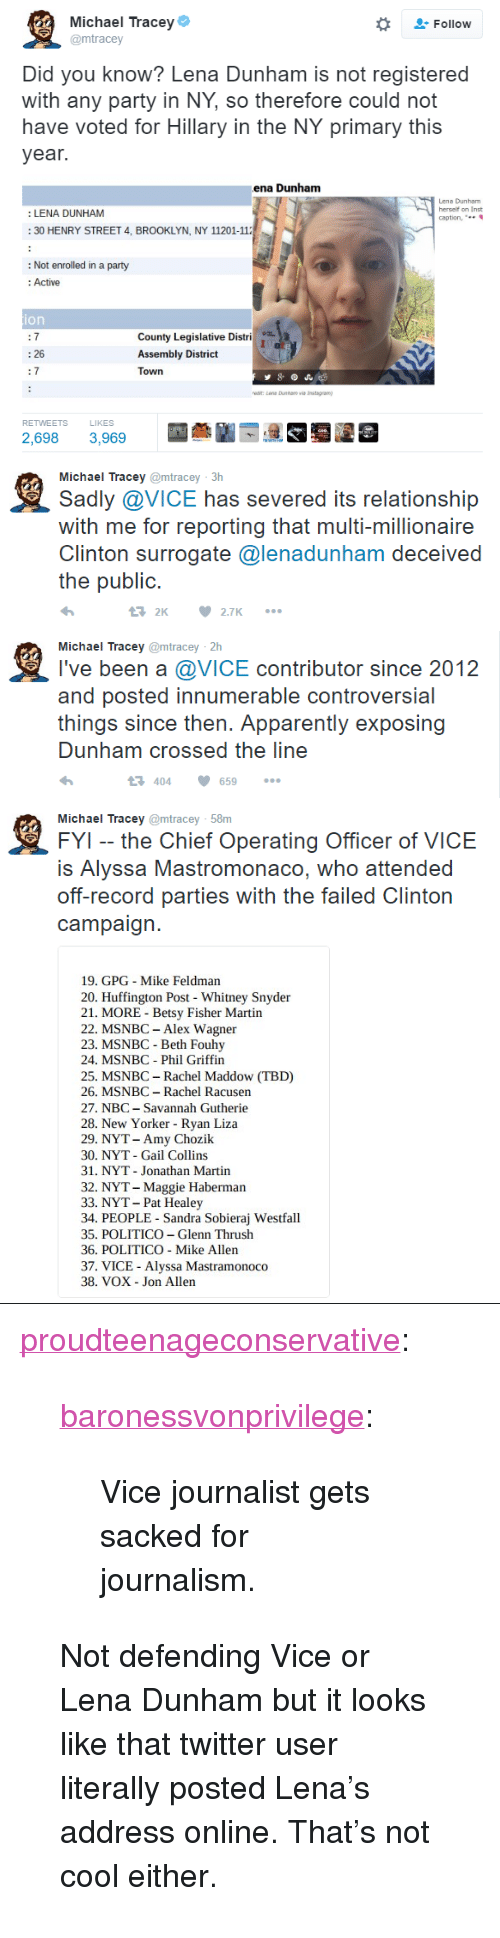 """Rachel Maddow: Michael Tracey  @mtracey  Follow  Did you know? Lena Dunham is not registered  with any party in NY, so therefore could not  have voted for Hillary in the NY primary this  year.  ena Dunham  Lena Dunham  herself on Inst  caption, """"  : LENA DUNHAM  30 HENRY STREET 4, BROOKLYN, NY 11201-11  : Not enrolled in a party  : Active  ion  County Legislative Distri  Assembly District  Town  : 26  7  RETWEETS  LIKES  2,698 3,969   Michael Tracey @mtracey 3h  Sadly @VICE has severed its relationship  with me for reporting that multi-millionaire  Clinton surTogatc @lenadunham deceived  the public.  2 2.7   鬼  Michael Tracey @mtracey 2h  I've been a @VICE contributor since 2012  and posted innumerable controversial  things since then. Apparently exposing  Dunham crossed the line  404659   Michael Tracey @mtracey 58m  FYI -- the Chief Operating Officer of VICE  IS Alyssa Mastromonaco, who attended  oft-record parties with the talled Clinton  campaign.  19. GPG Mike Feldman  20. Huffington Post Whitney Snyder  21. MORE - Betsy Fisher Martin  22. MSNBC - Alex Wagner  23. MSNBC - Beth Fouhy  24. MSNBC Phil Griffin  25. MSNBC- Rachel Maddow (TBD)  26. MSNBC Rachel Racusen  27. NBC -Savannah Gutherie  28. New Yorker - Ryan Liza  29. NYT- Amy Chozik  30. NYT - Gail Collins  31. NYT Jonathan Martin  32. NYT- Maggie Haberman  33. NYT- Pat Healey  34. PEOPLE Sandra Sobieraj Westfall  35. POLITICO -Glenn Thrush  36. POLITICO - Mike Allen  37. VICE Alyssa Mastramonoco  38. VOX Jon Allen <p><a href=""""http://proudteenageconservative.tumblr.com/post/153064366164/baronessvonprivilege-vice-journalist-gets-sacked"""" class=""""tumblr_blog"""">proudteenageconservative</a>:</p>  <blockquote><p><a class=""""tumblr_blog"""" href=""""http://baronessvonprivilege.tumblr.com/post/153050254749"""">baronessvonprivilege</a>:</p><blockquote> <p>Vice journalist gets sacked for journalism.</p> </blockquote>  <p>Not defending Vice or Lena Dunham but it looks like that twitter user literally posted Lena's address online"""